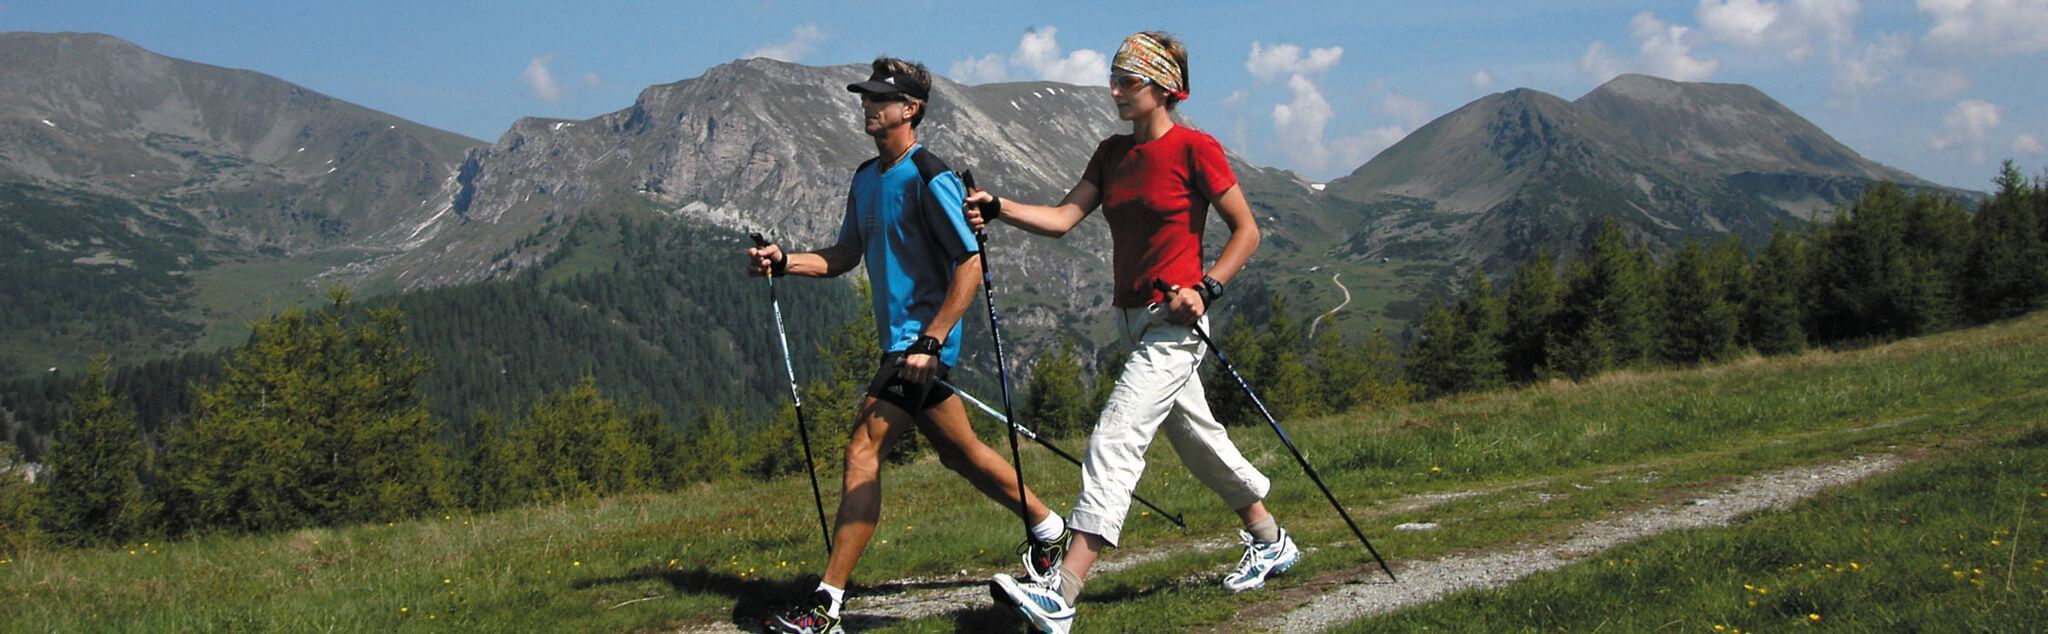 Nordic Walking a Volpiano